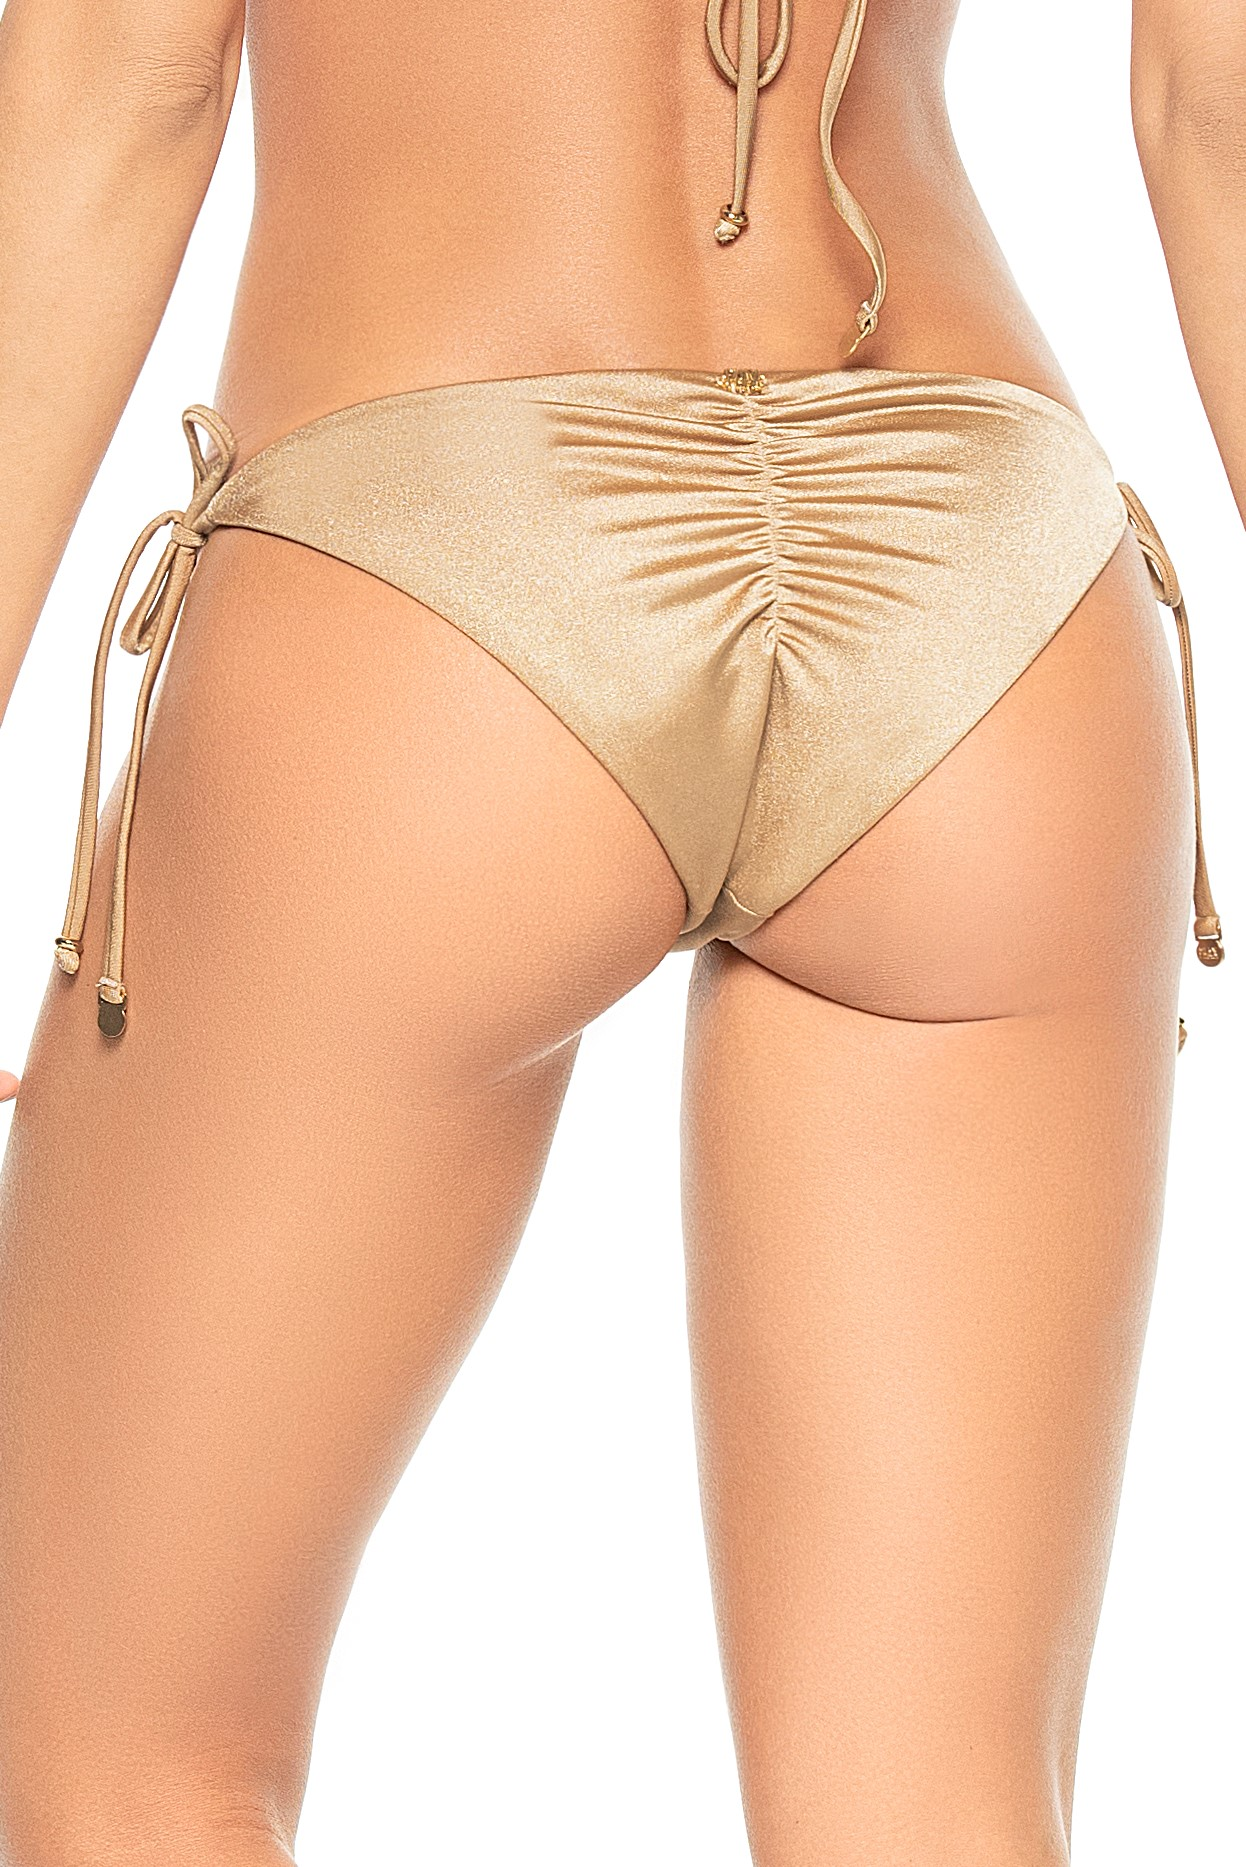 Phax Bella Brasil Golden Scrunch Bikini Bottom